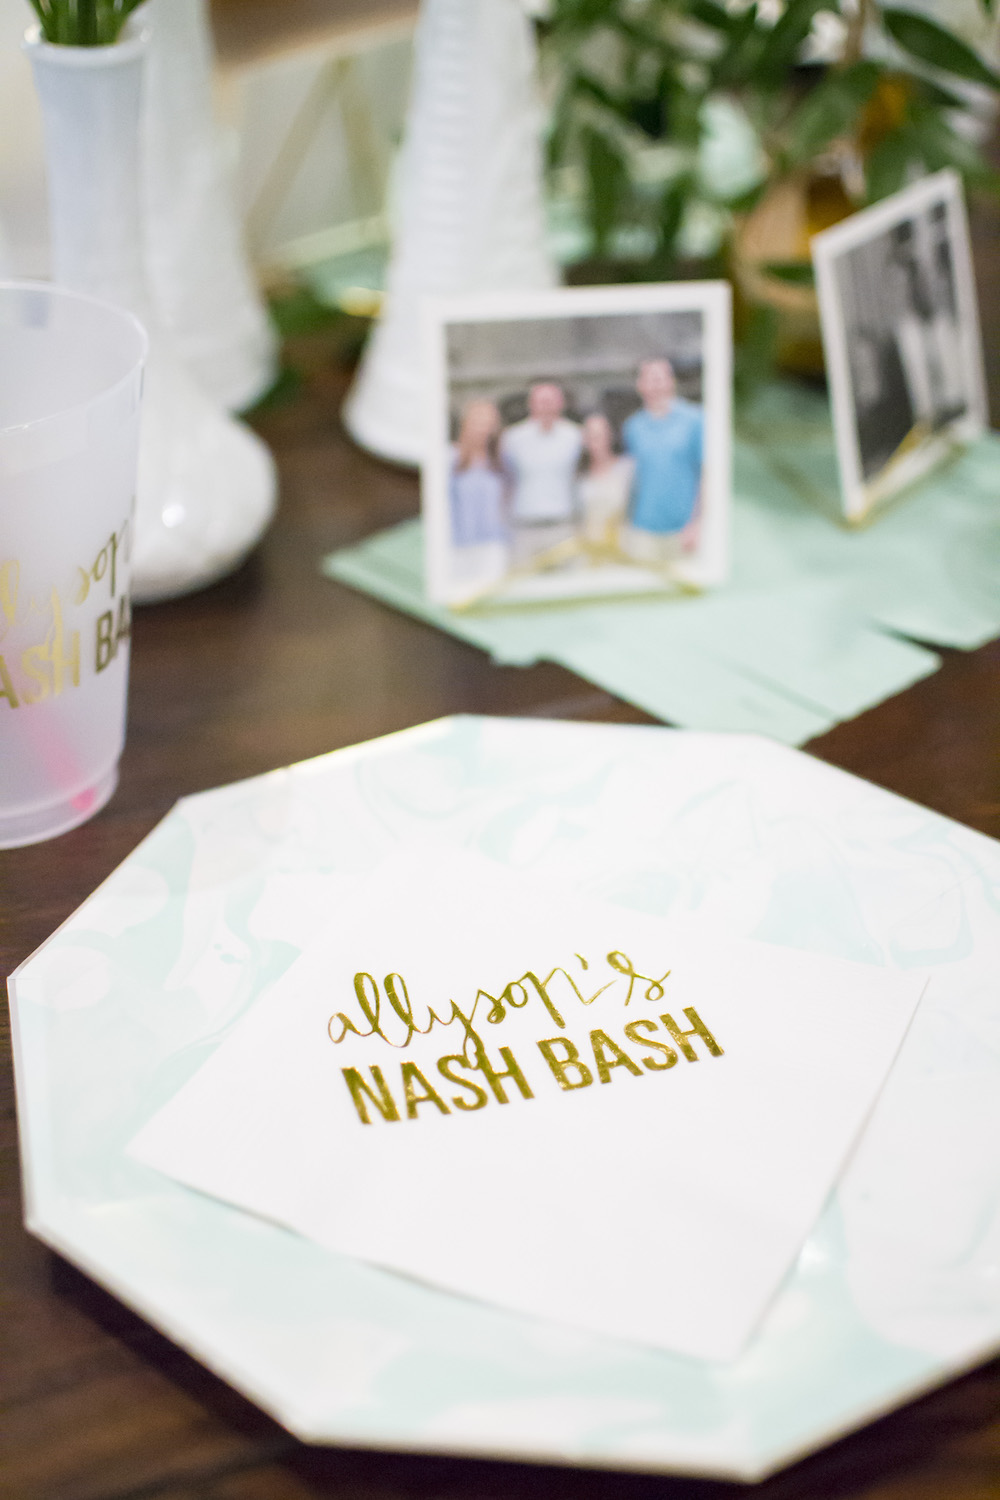 nash bash napkins.jpg